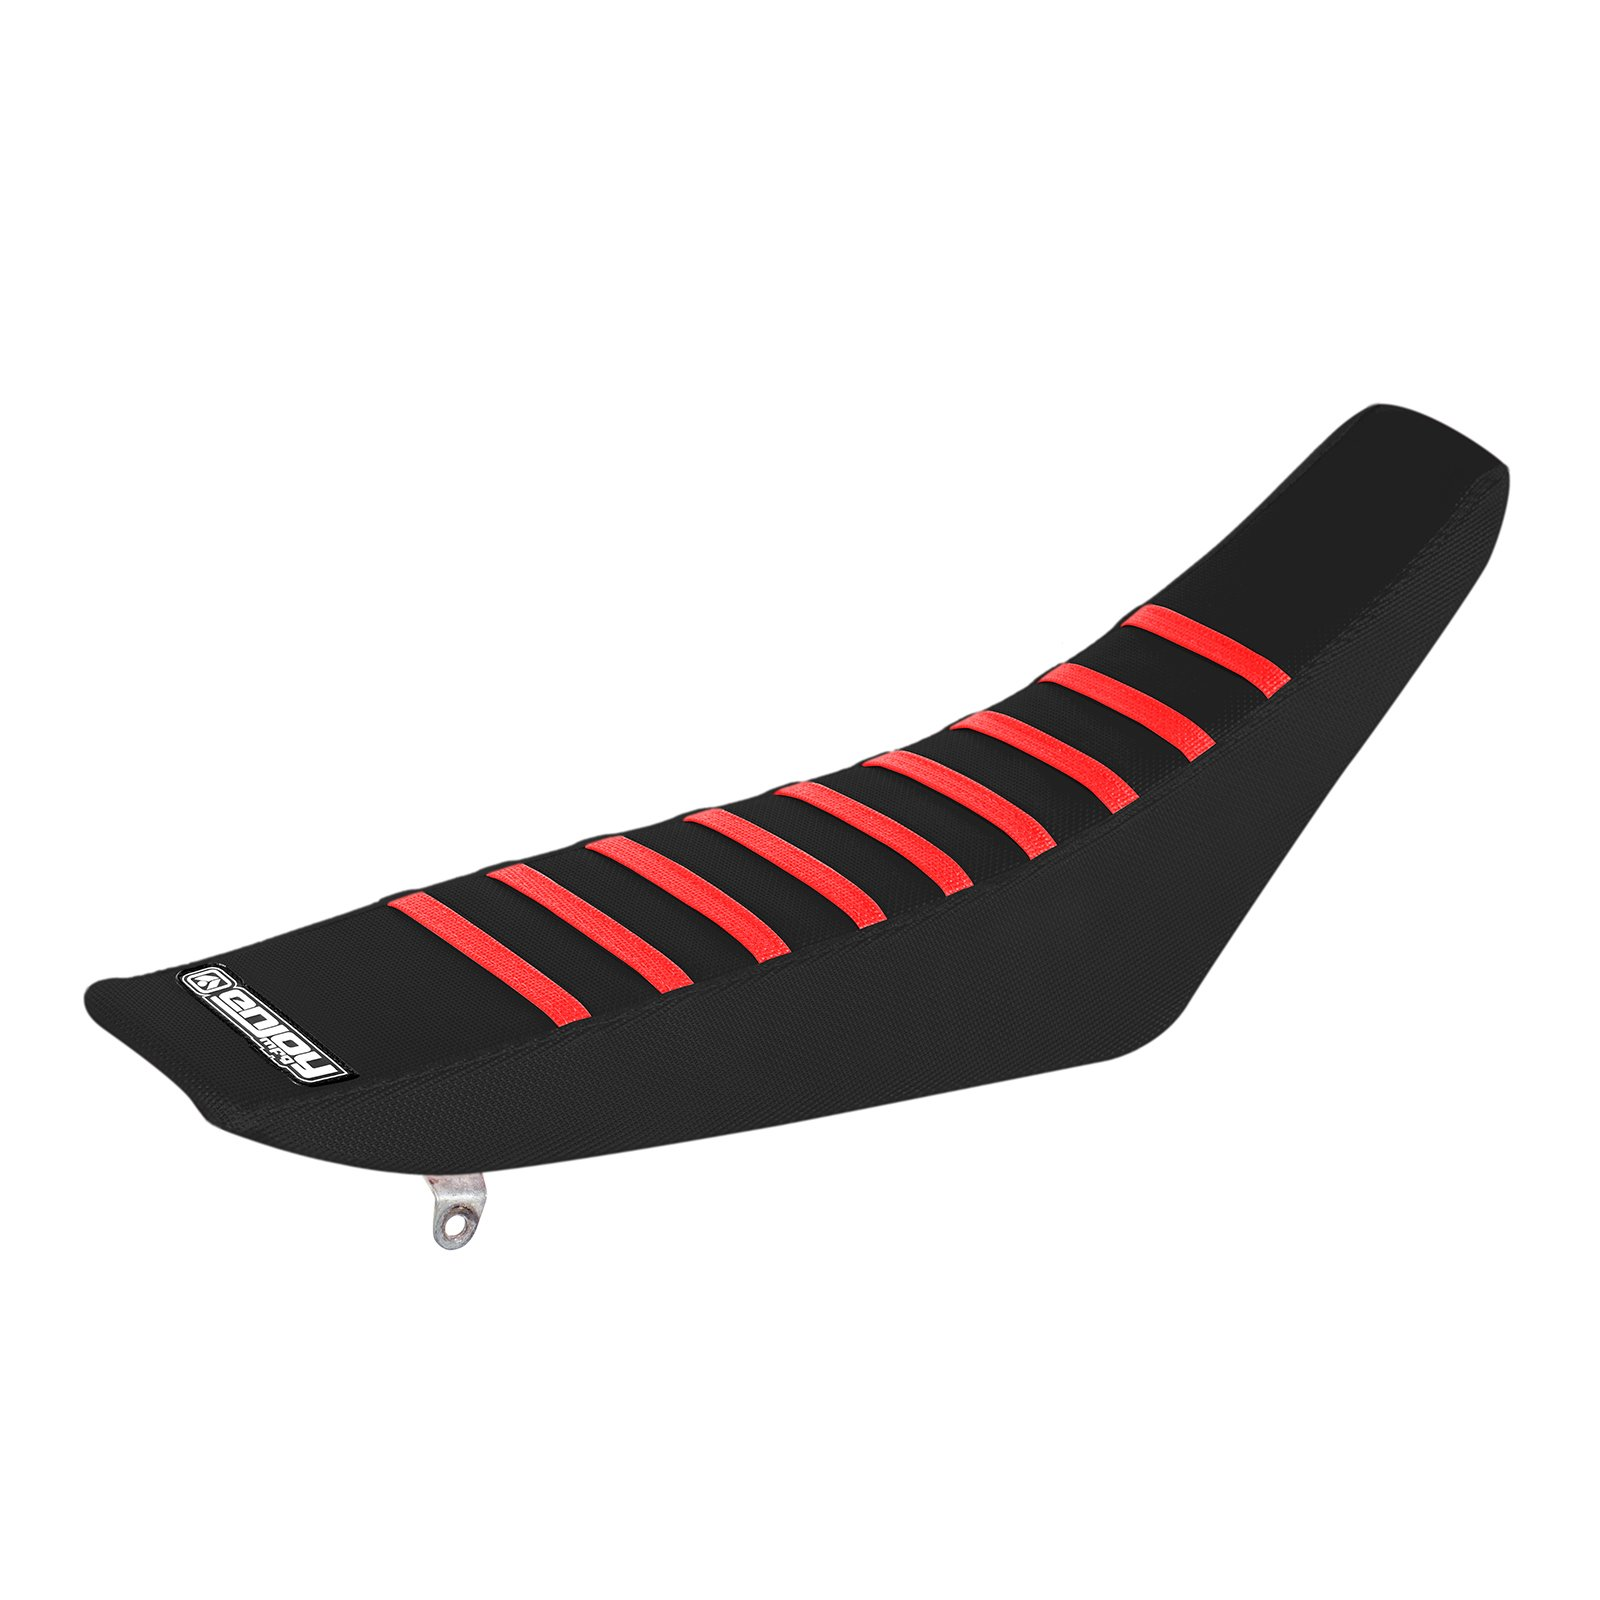 Enjoy MFG Ribbed Seat Cover for Honda CRF 150 R - All Black / Red Ribs